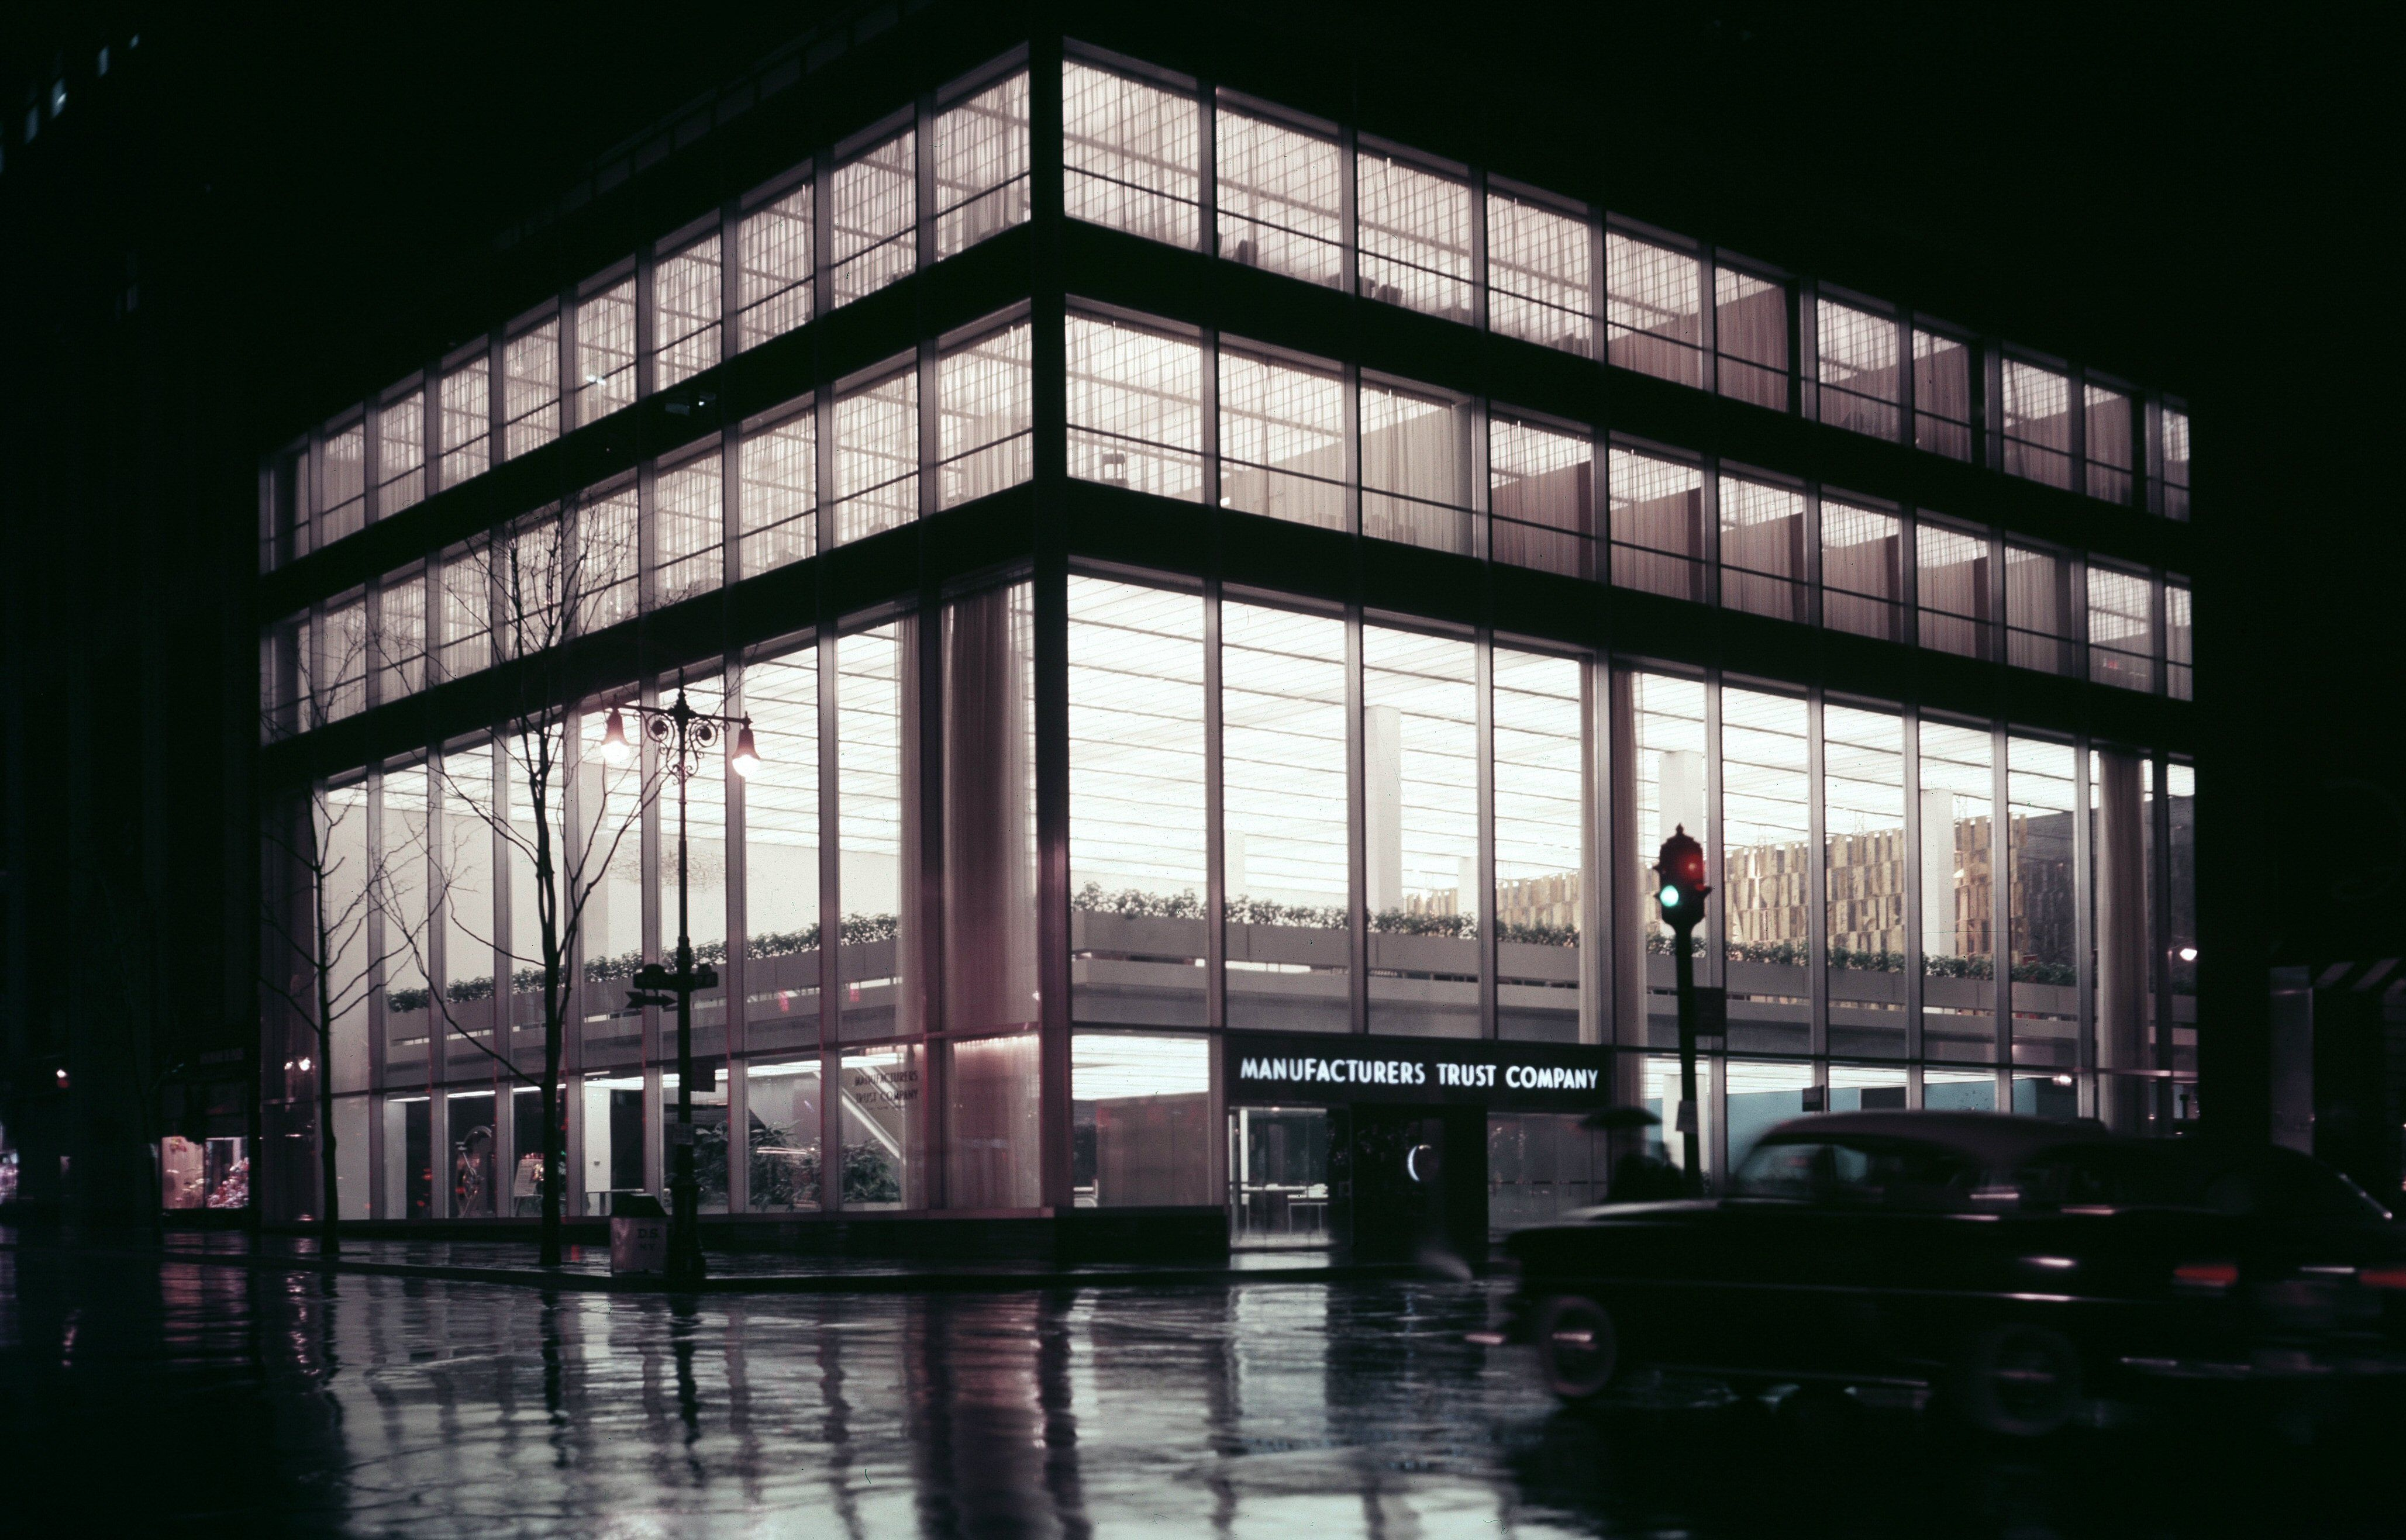 510 Fifth Avenue in NYC, Manufacturers Trust Company c. 1955 by architect Gordon Bunshaft